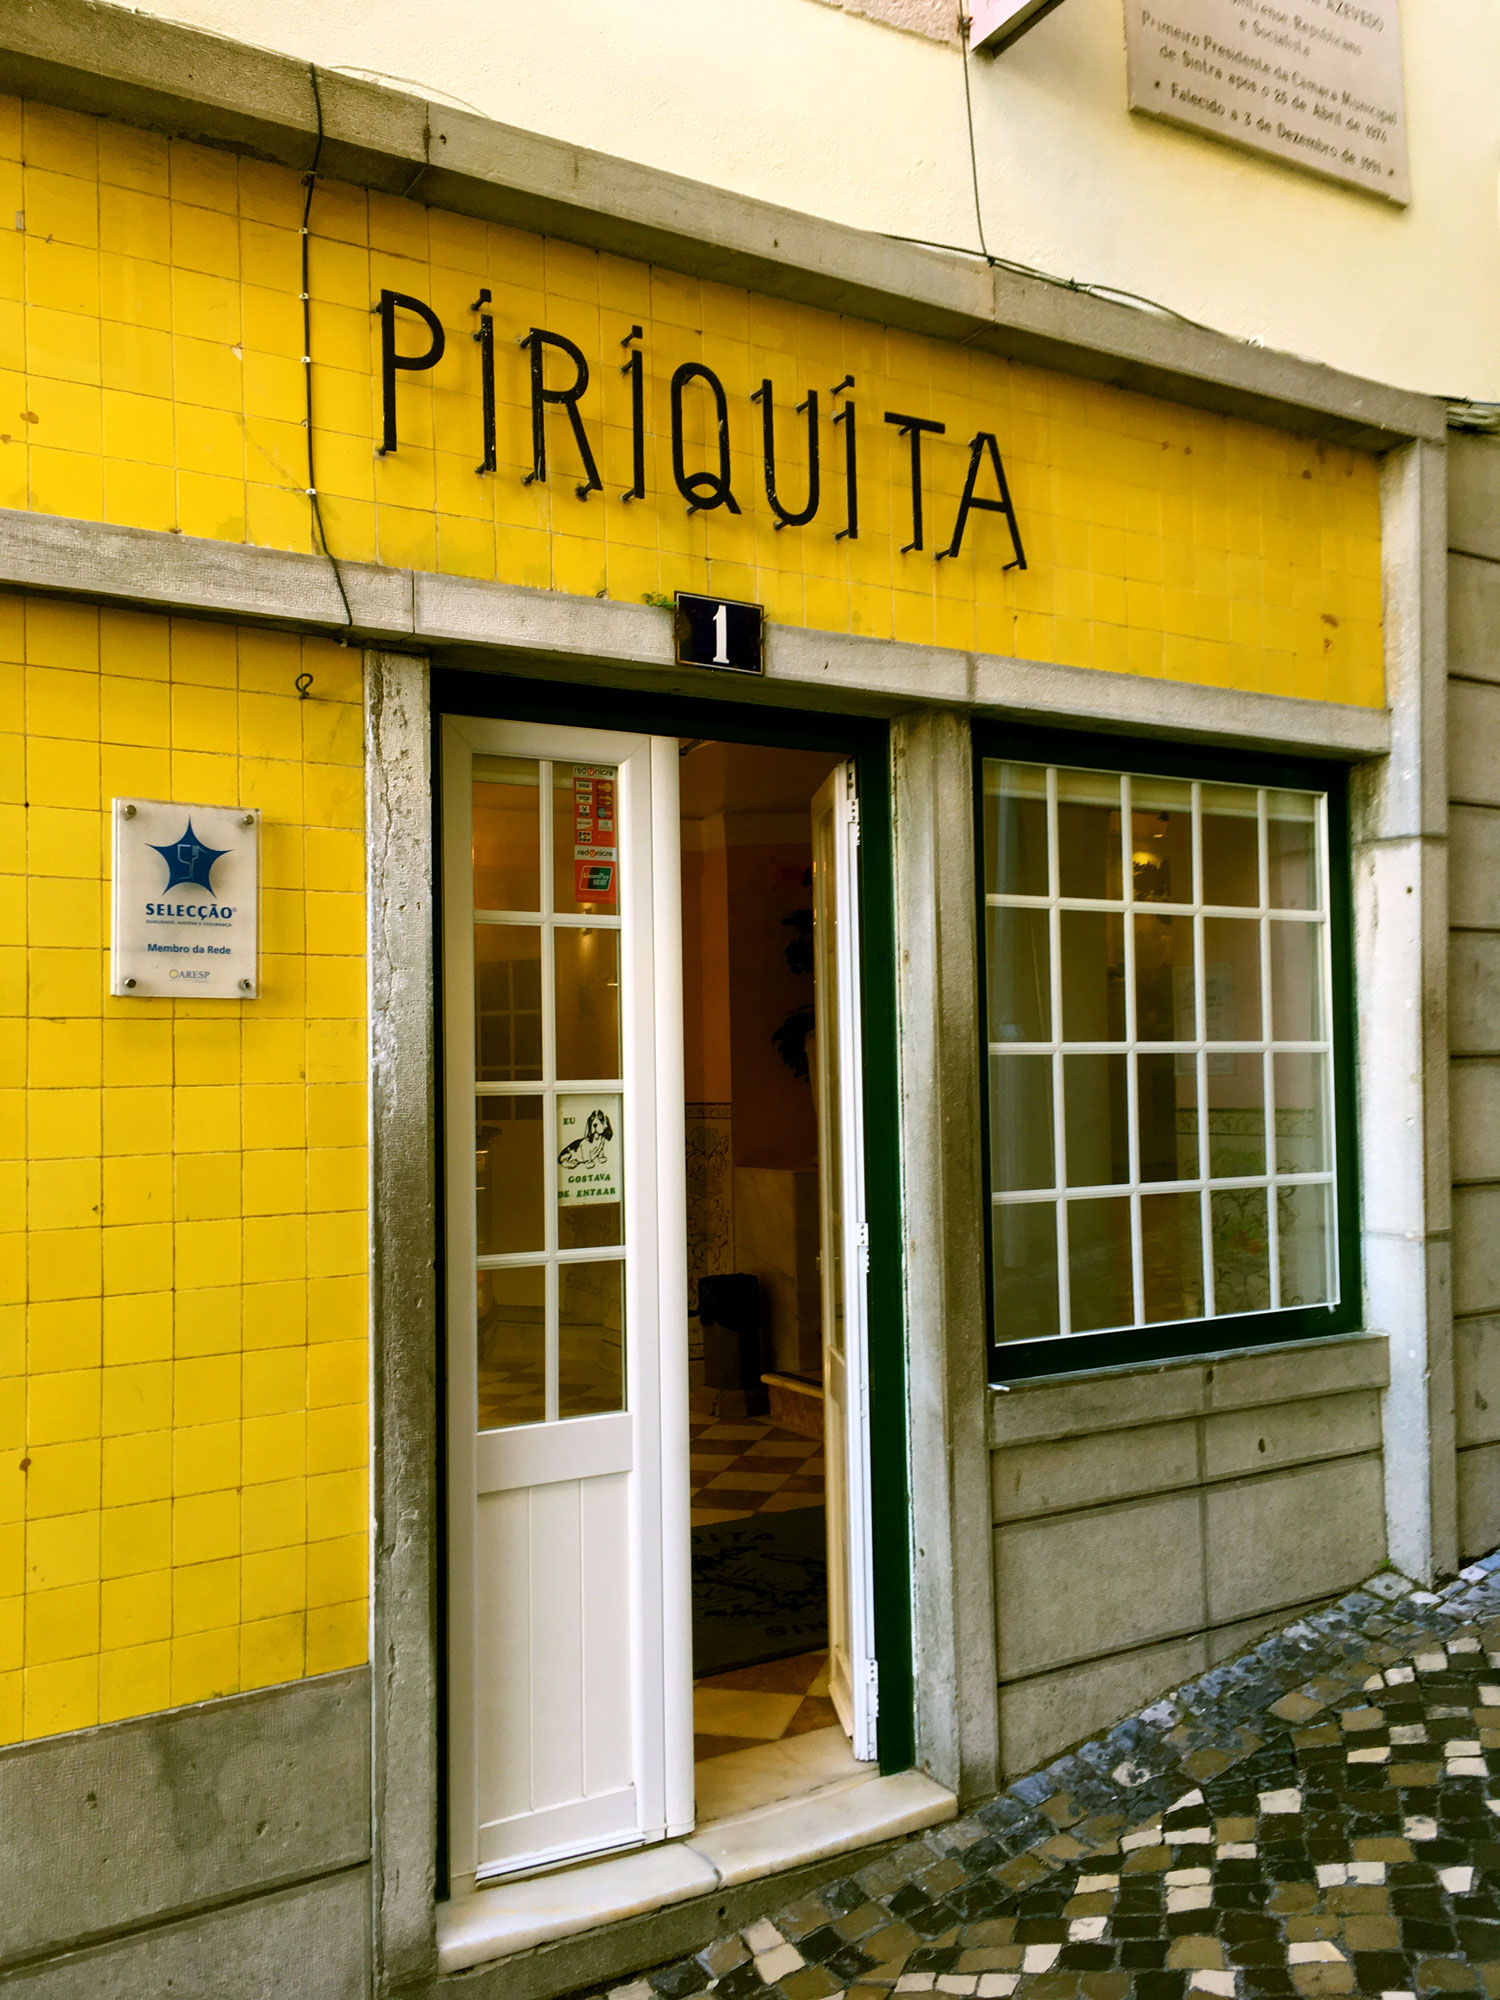 after an overnight international flight, our first stop (once we got to sintra, 2 hours from lisbon airport) was  casa piriquita . We picked up travesseiro, a traditional pastry of Sintra, meaning pillow in portuguese. They are puff pastry filled with almond cream. The bakery has been open since 1862 and provided the perfect fuel for our exploration of the pena palace and moor castle.